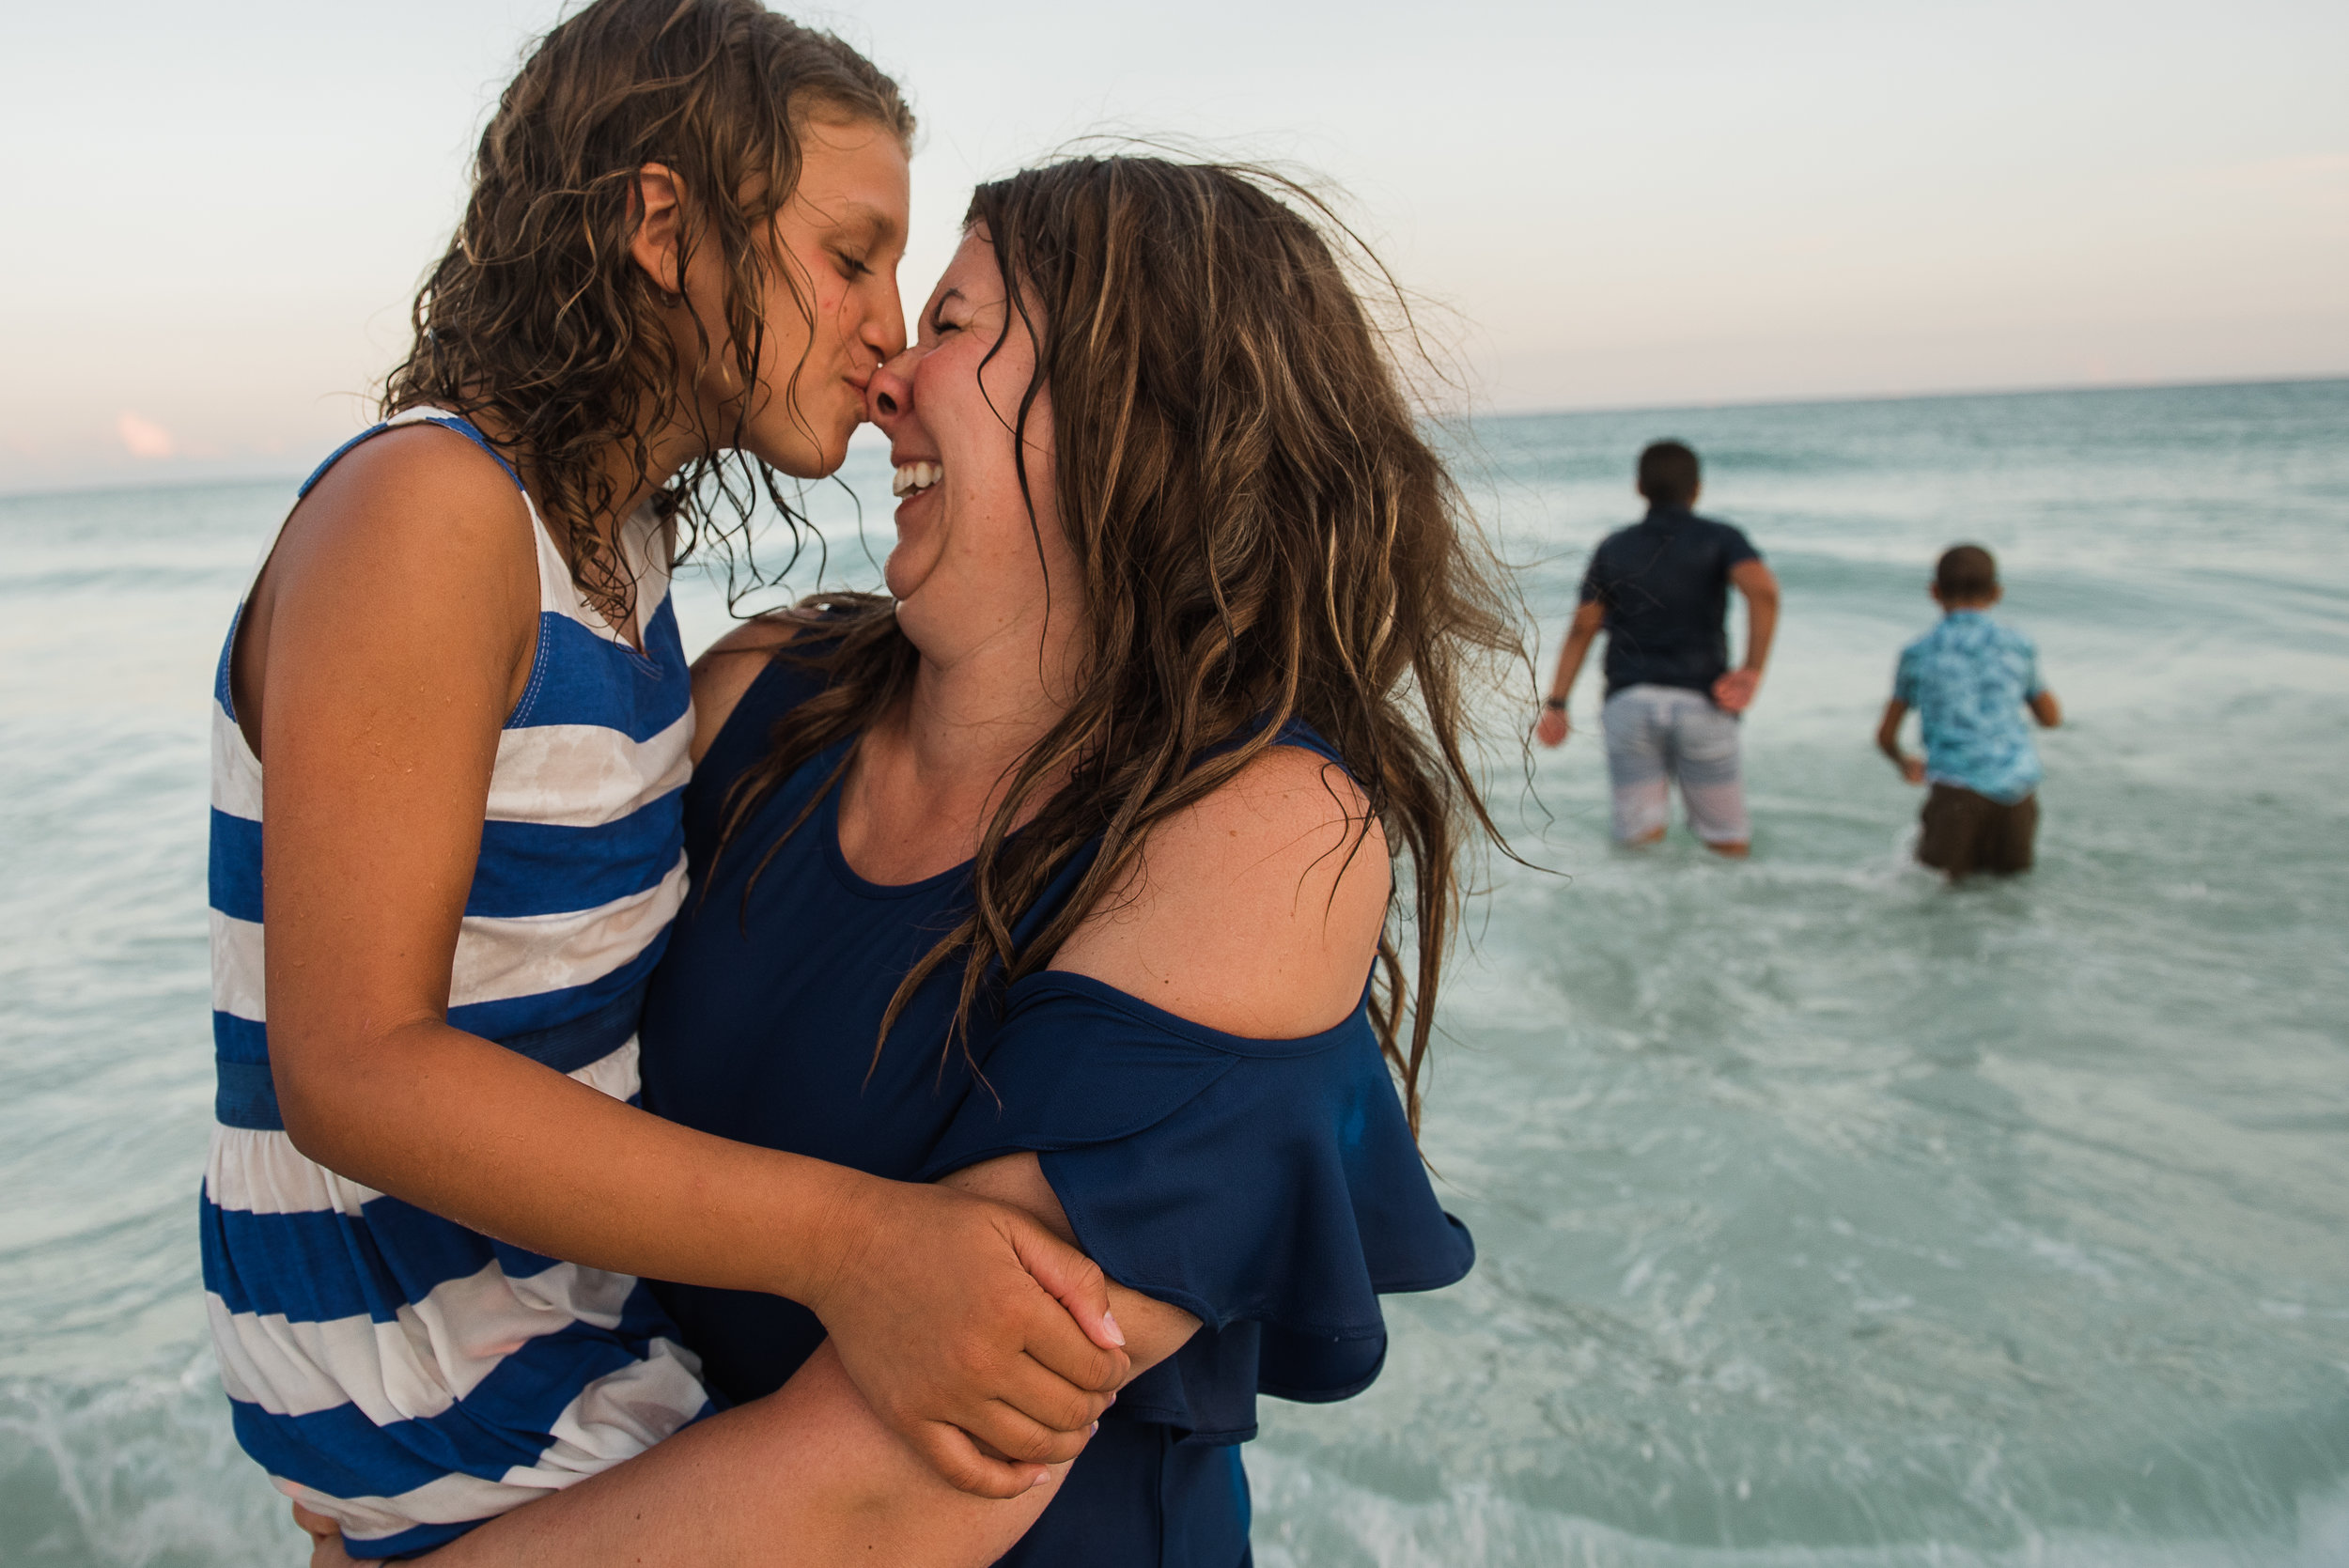 annmangumphotography.jpg-pensacola family photographer-mom and daughter in water